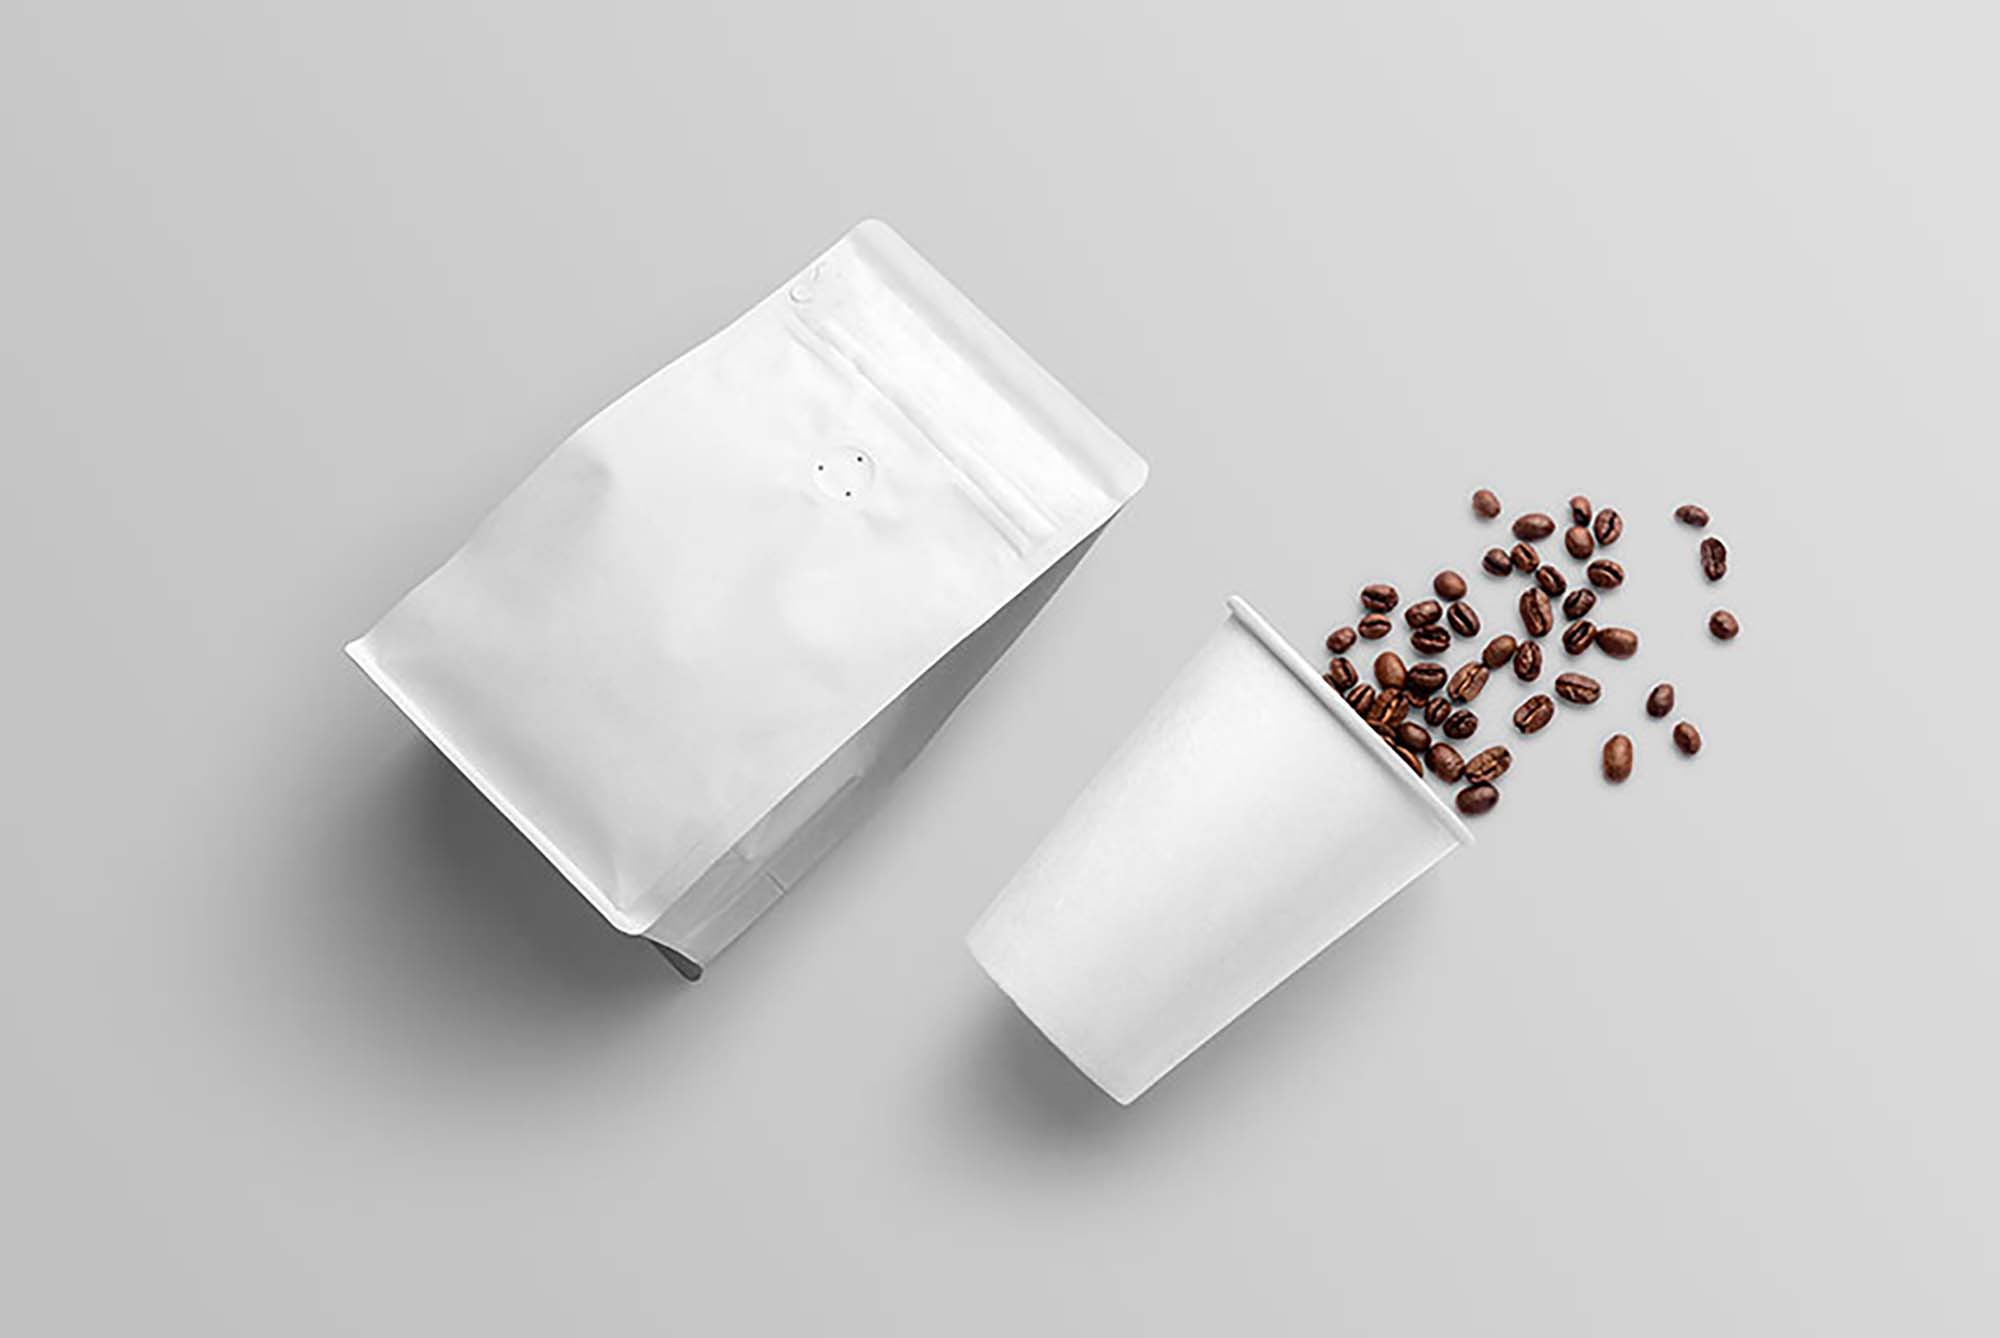 Free coffee pouch packaging bag mockup psd. Free Coffee Packaging Mockup Psd